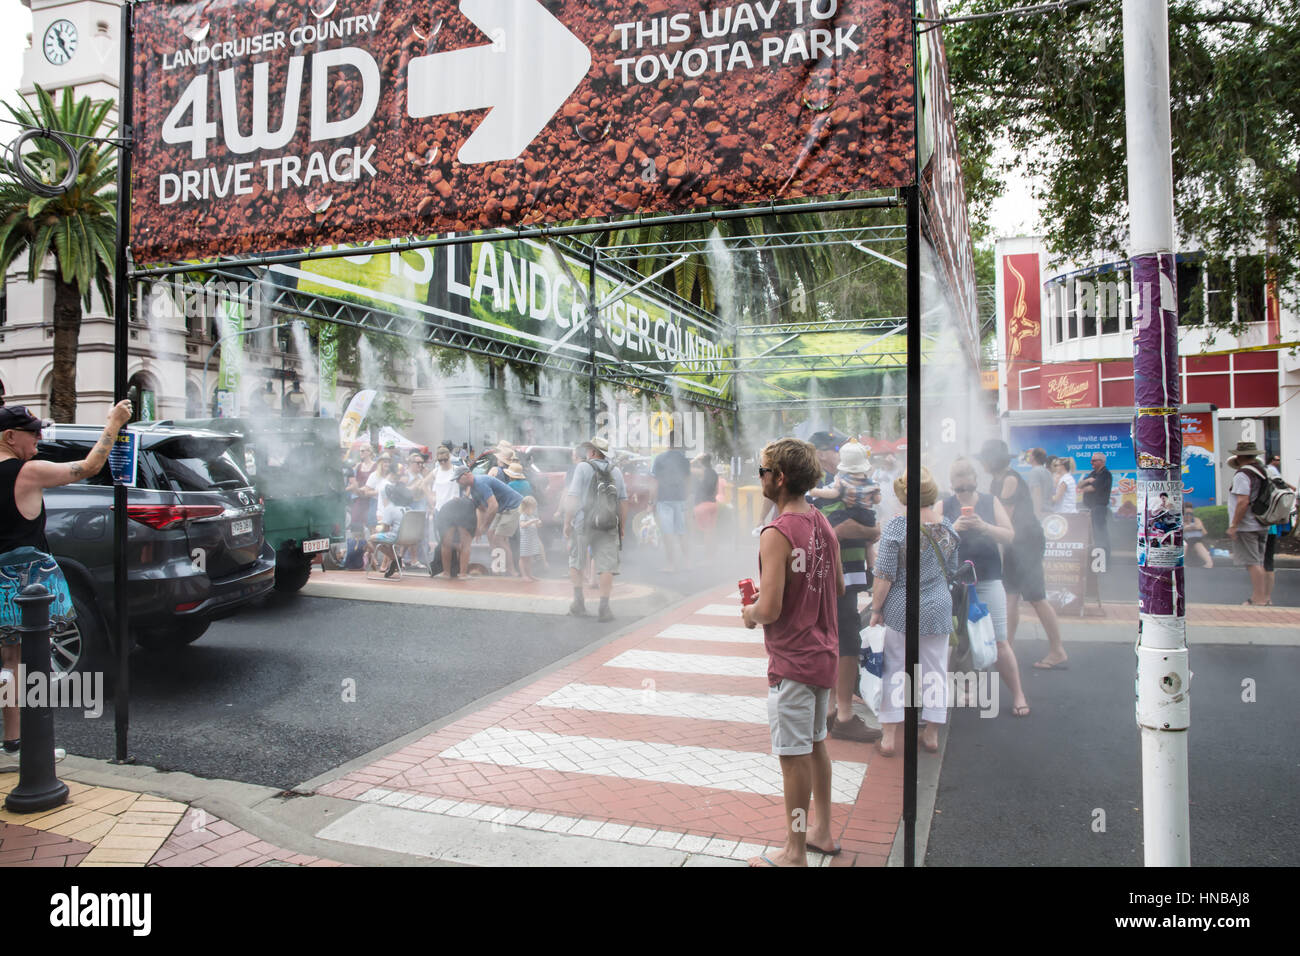 Misty Water Spray to cool pedestrians at Tamworth Country Music Festival January 2017 - Stock Image